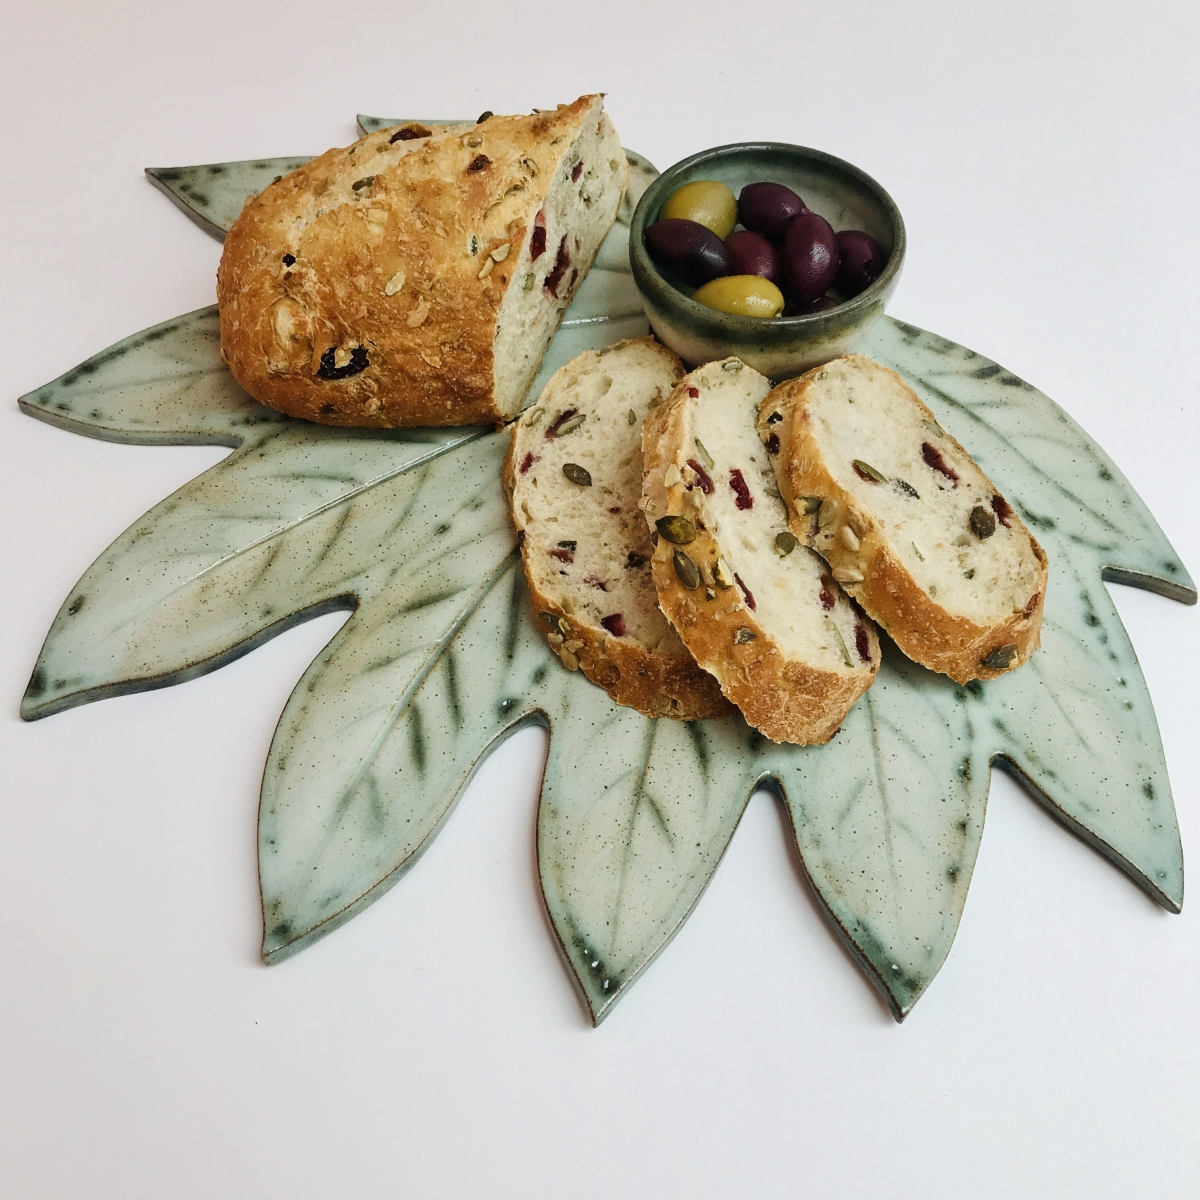 Fatsia Leaf Sharing Platter with Bread & Olives